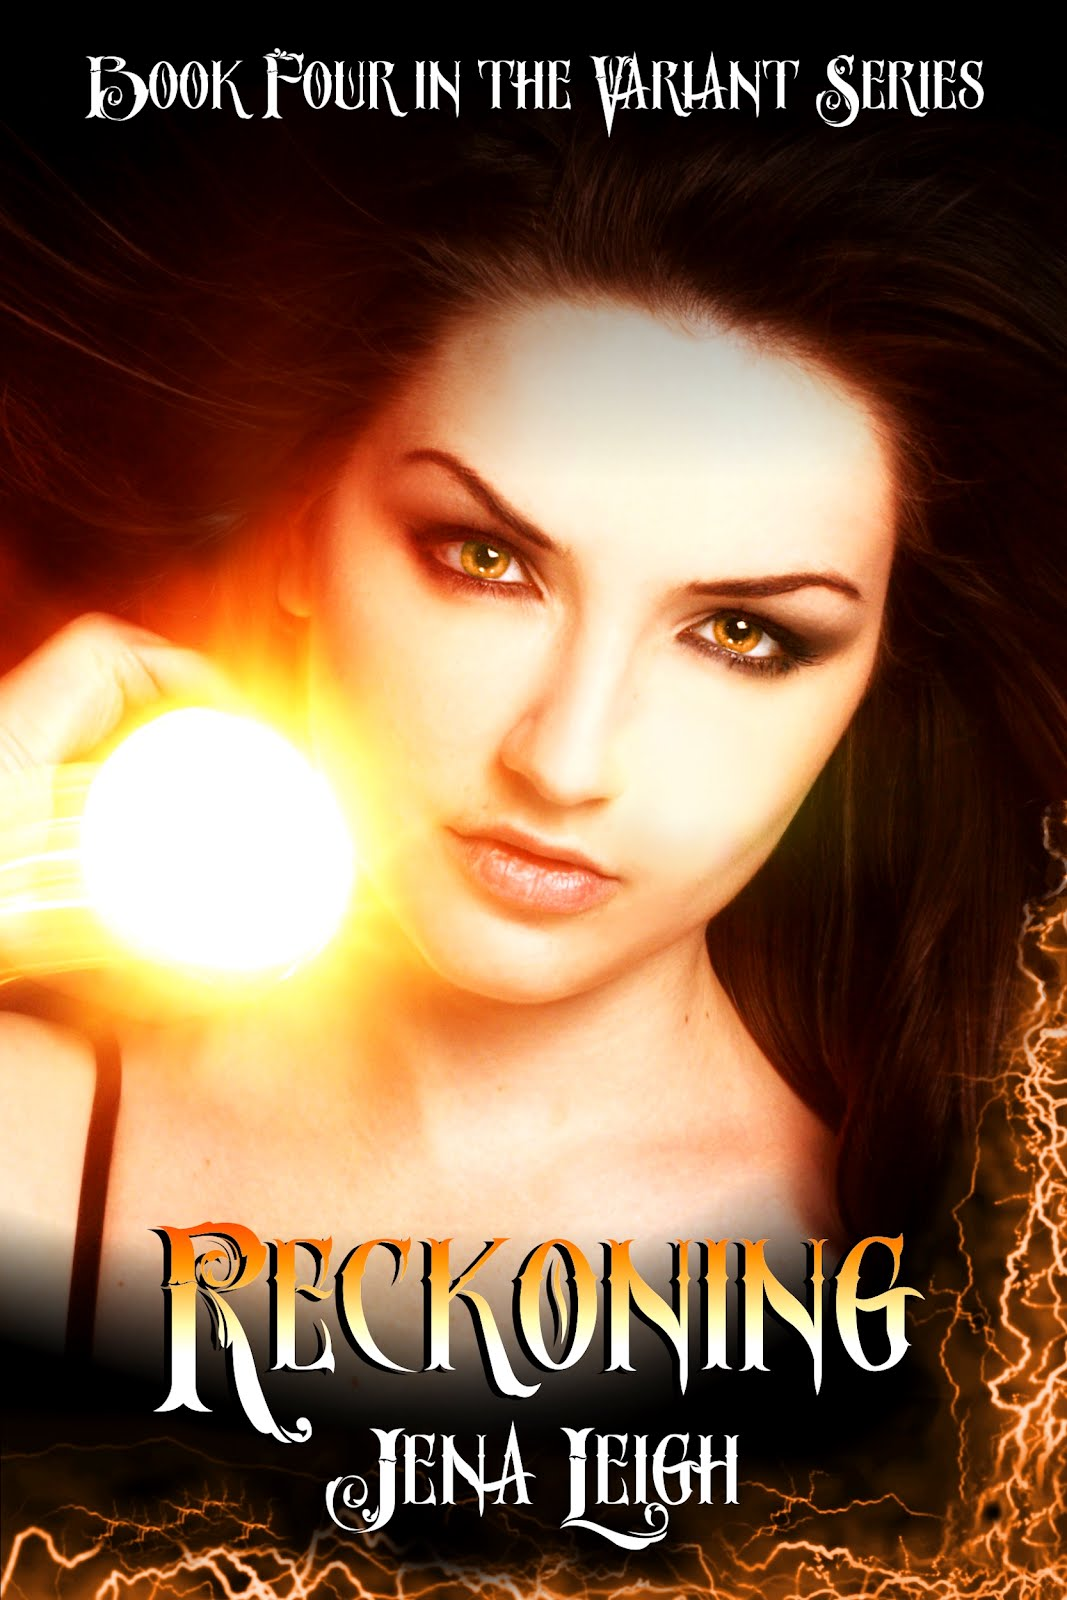 Find Reckoning on Amazon